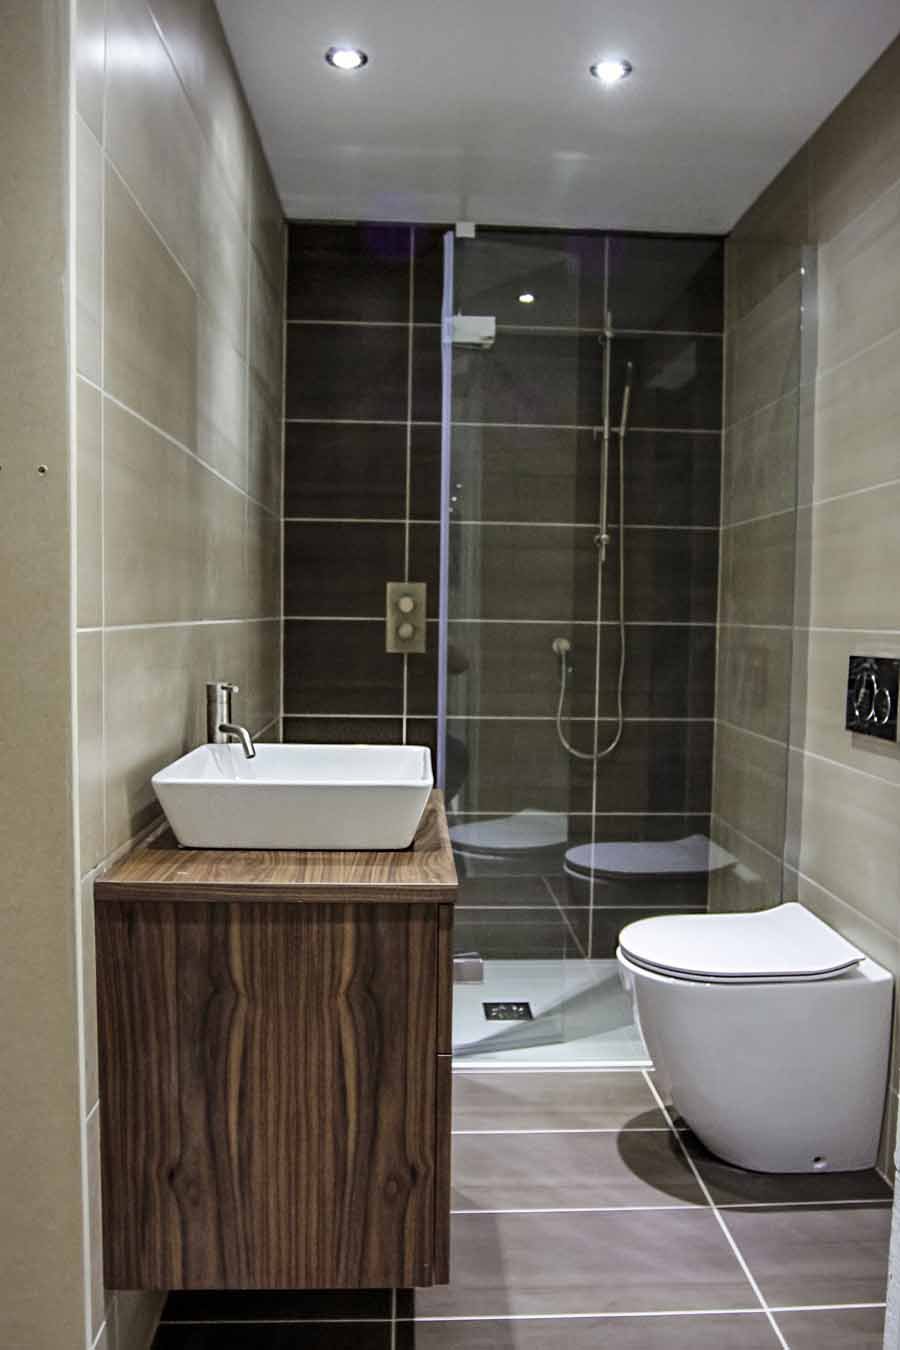 8cd48f03664 A luxury small bathroom with walkin shower enclosure on display at the Room  H2o bathroom and